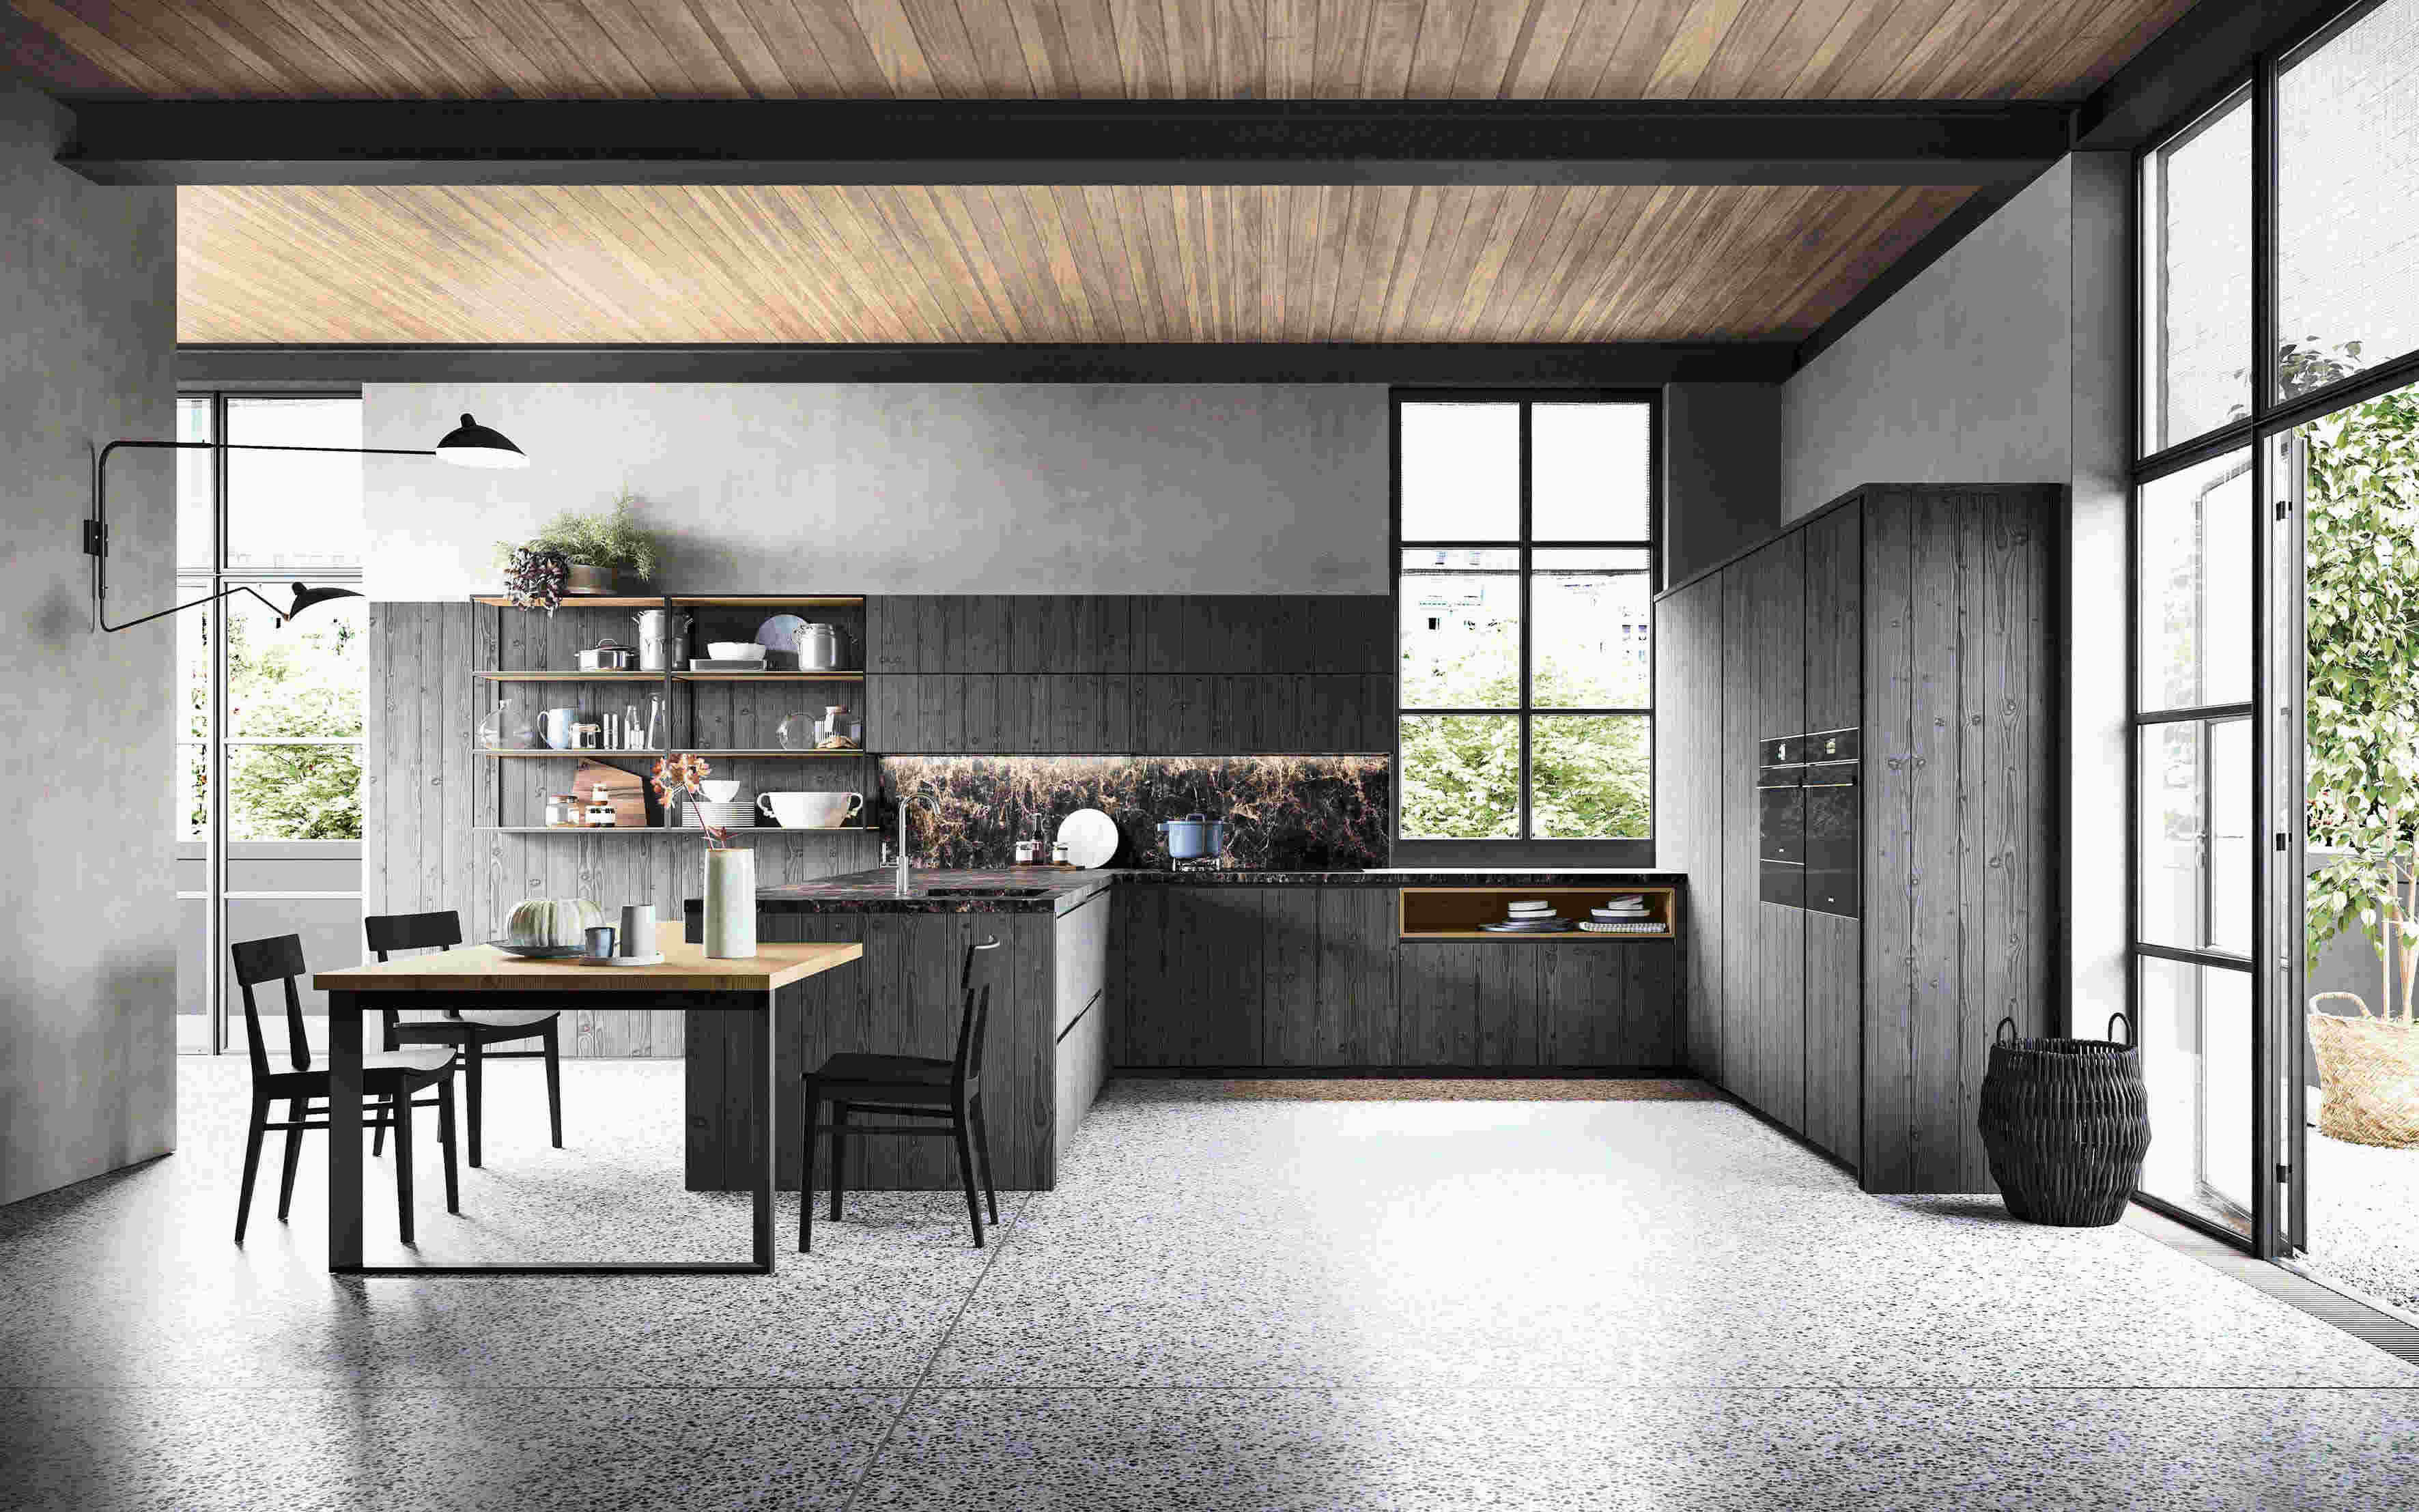 Cucine moderne 2019 tendenze stili e materiali  Peeter